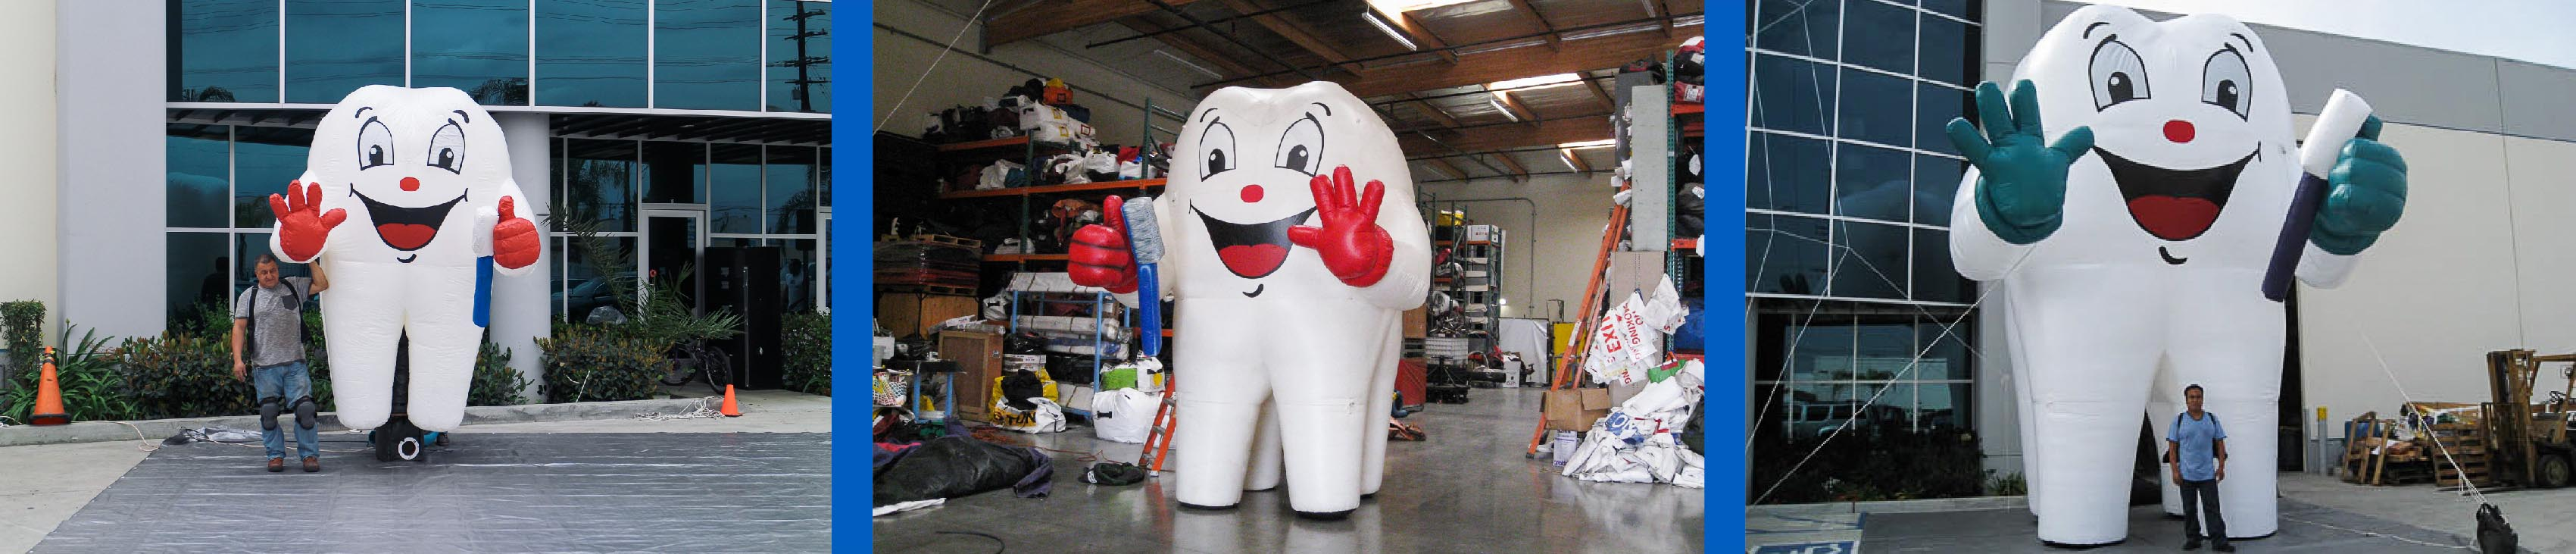 inflatable-tooth-sizes